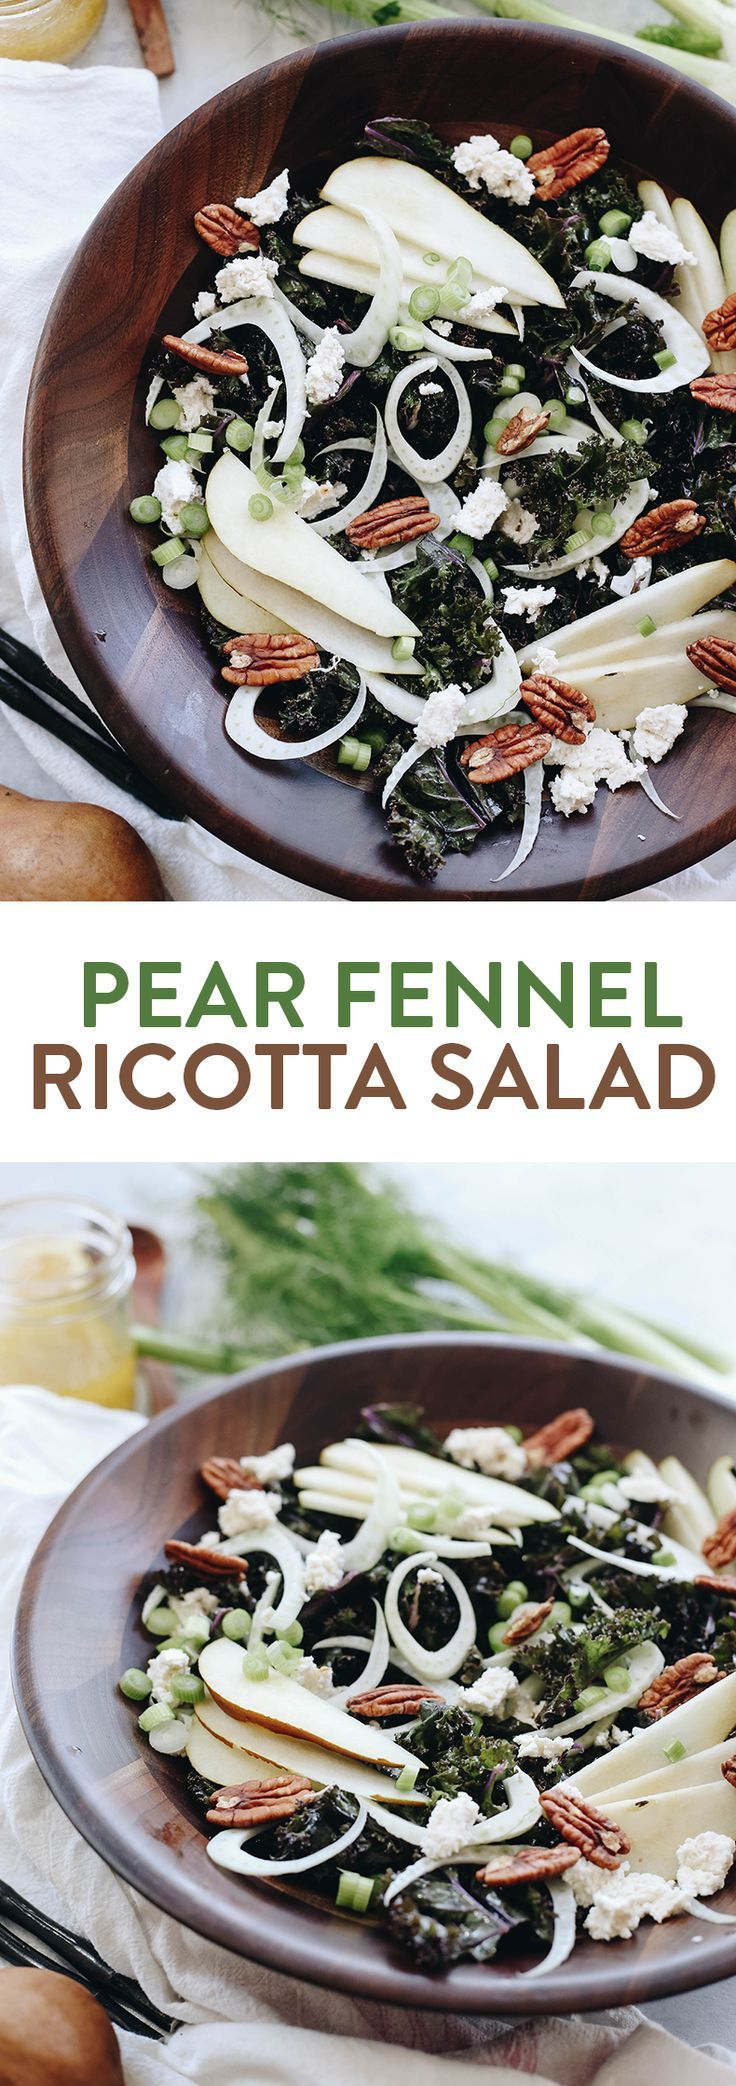 A crisp fall salad on a bed of massaged kale, this Pear Fennel and Ricotta Kale Salad will make dinner prep a breeze for those cooler and darker fall evenings